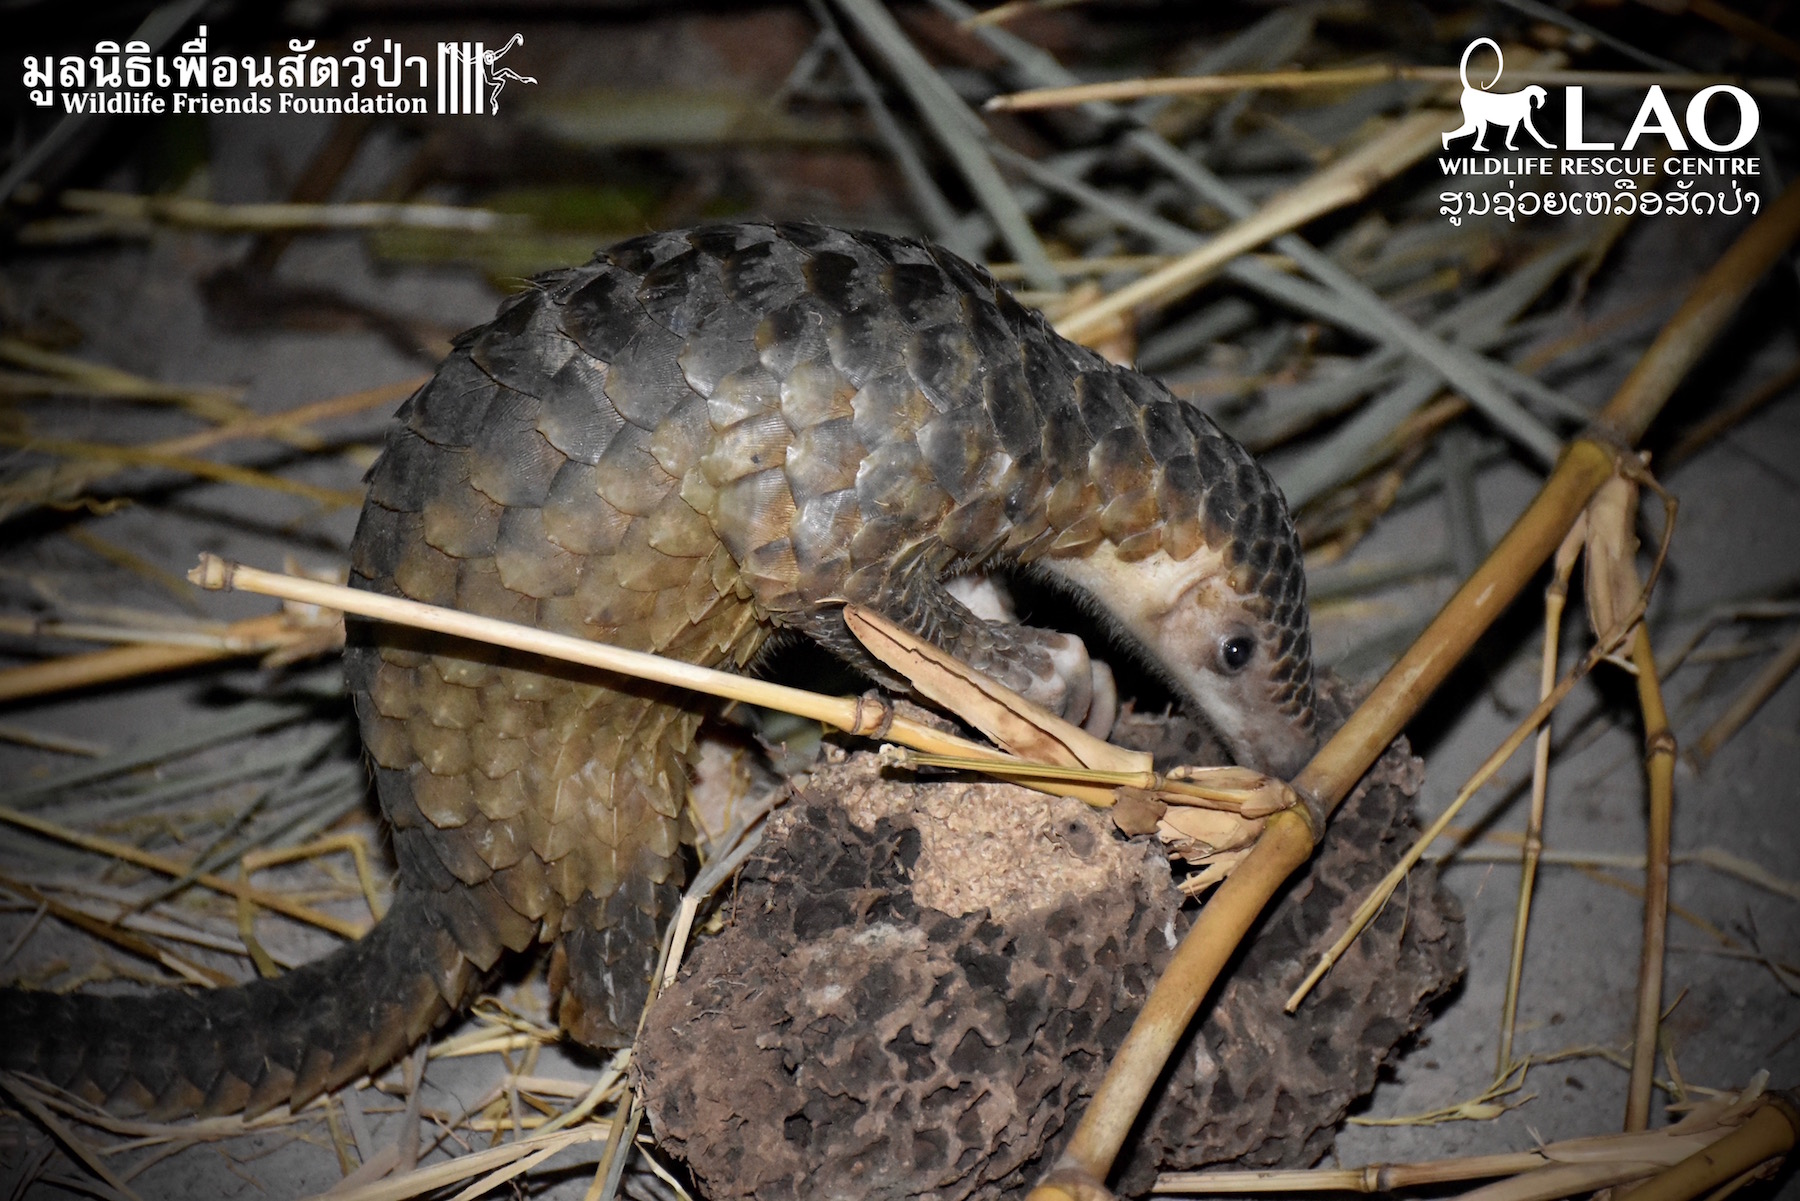 Pangolin Confiscation Update – Day 2